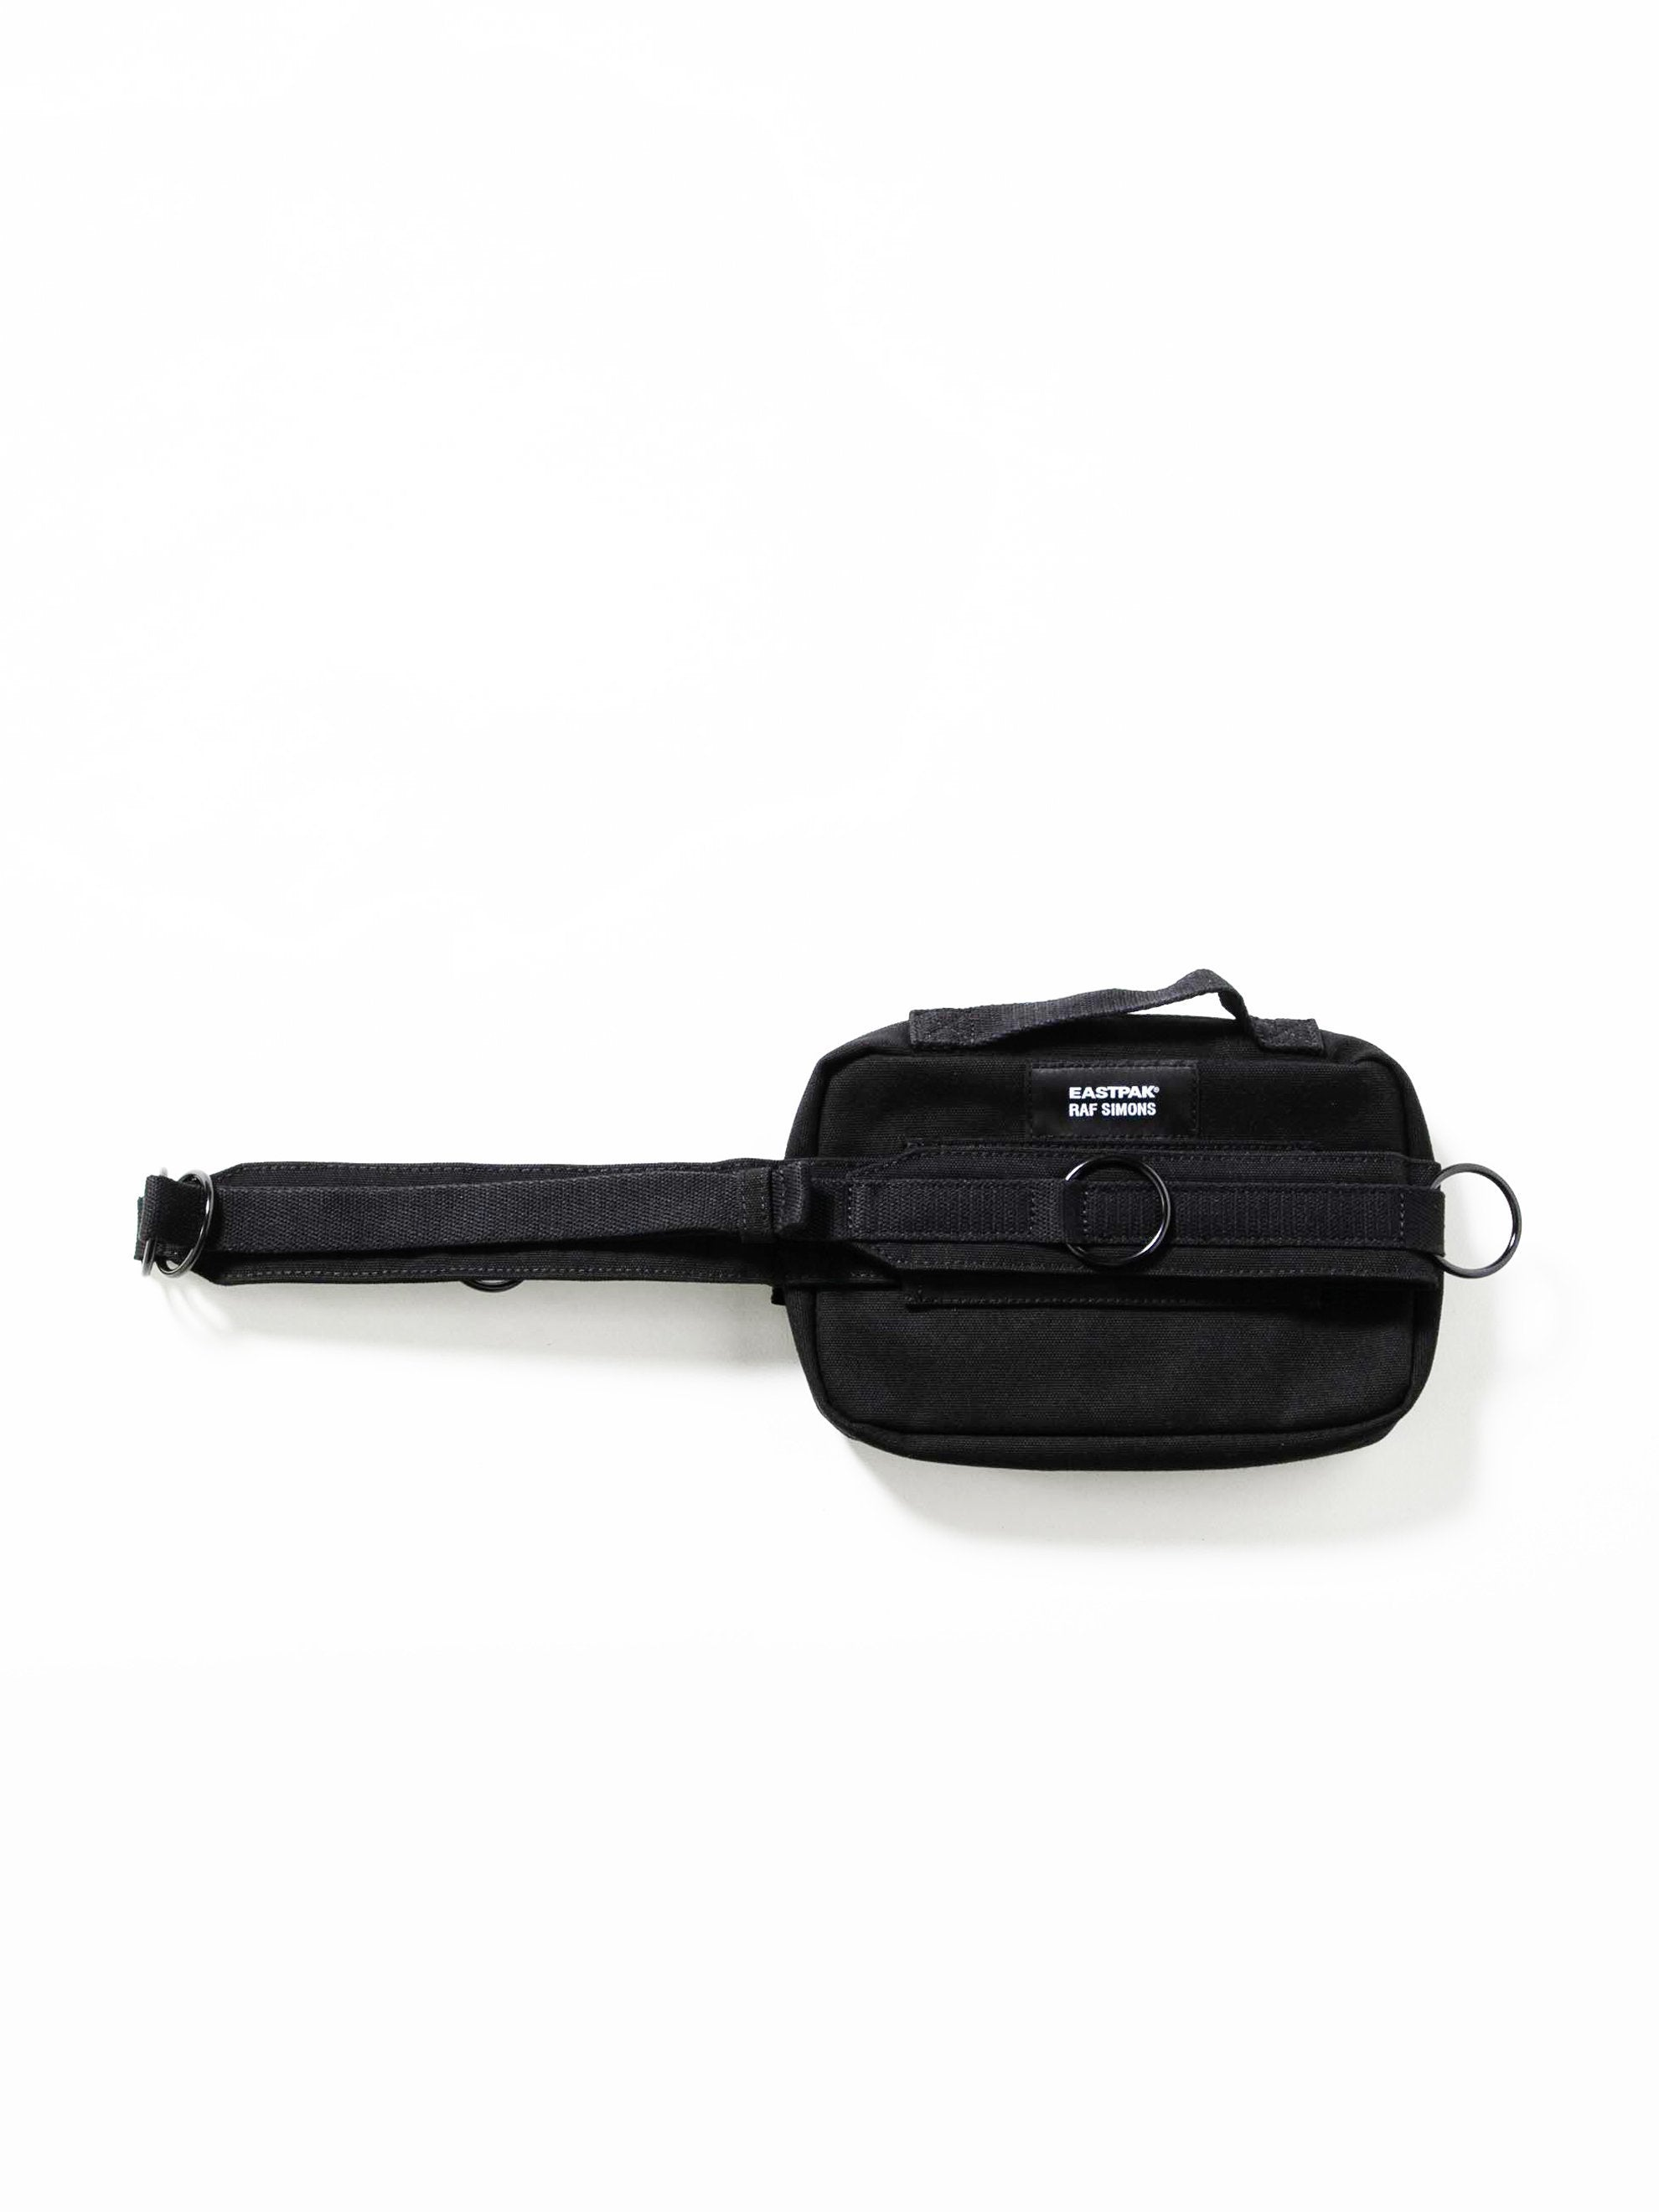 Black RAF Simons x Eastpak RS Waist Bag Loop 3